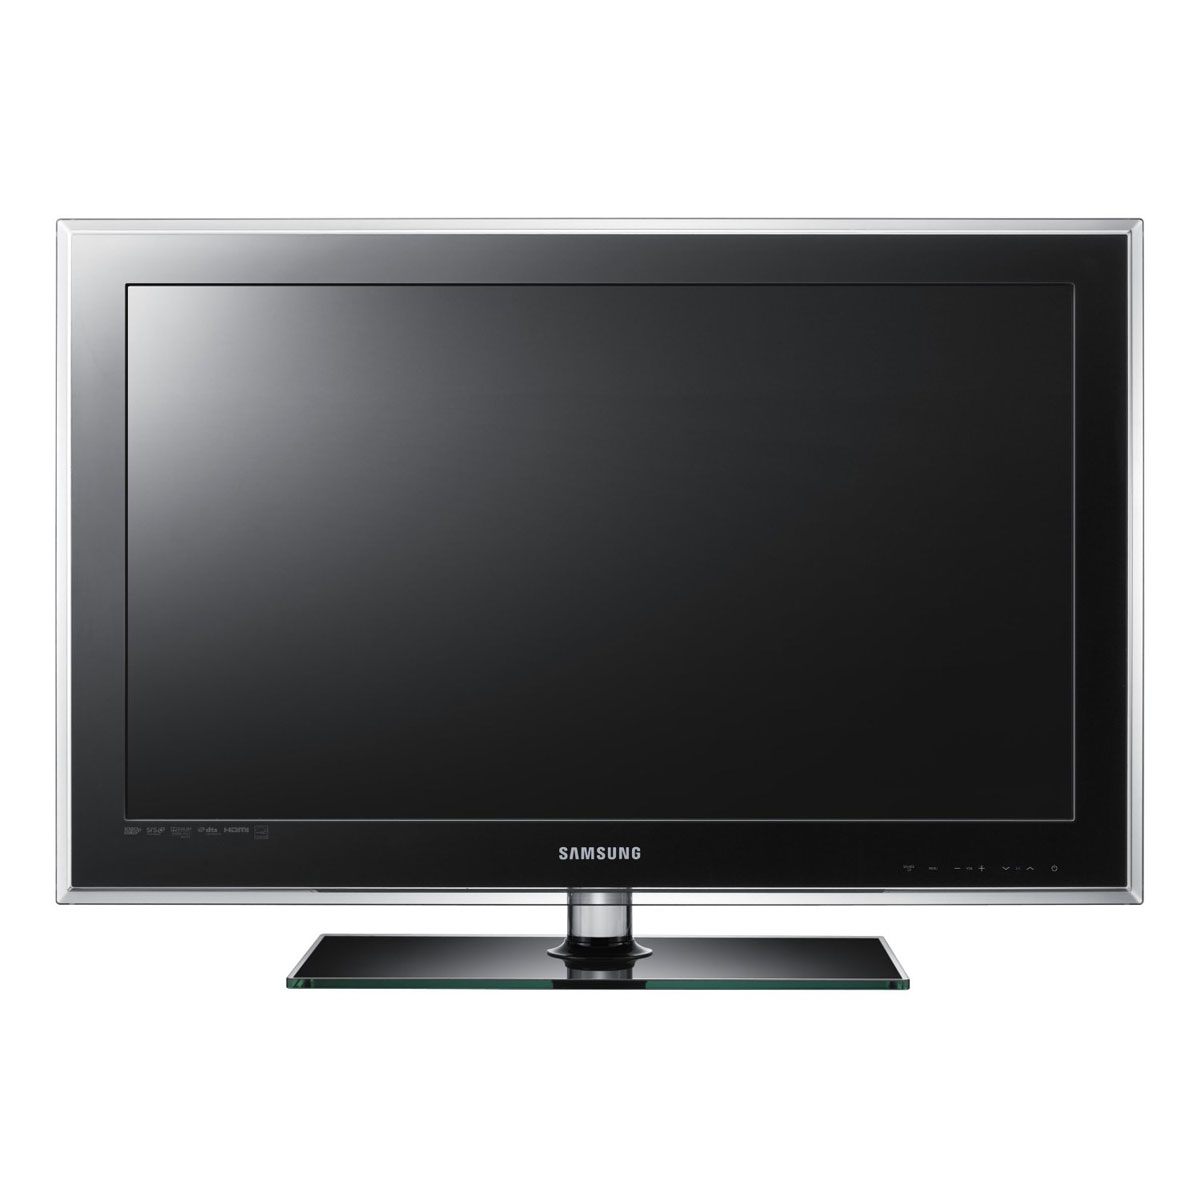 samsung le40d550 tv samsung sur ldlc. Black Bedroom Furniture Sets. Home Design Ideas